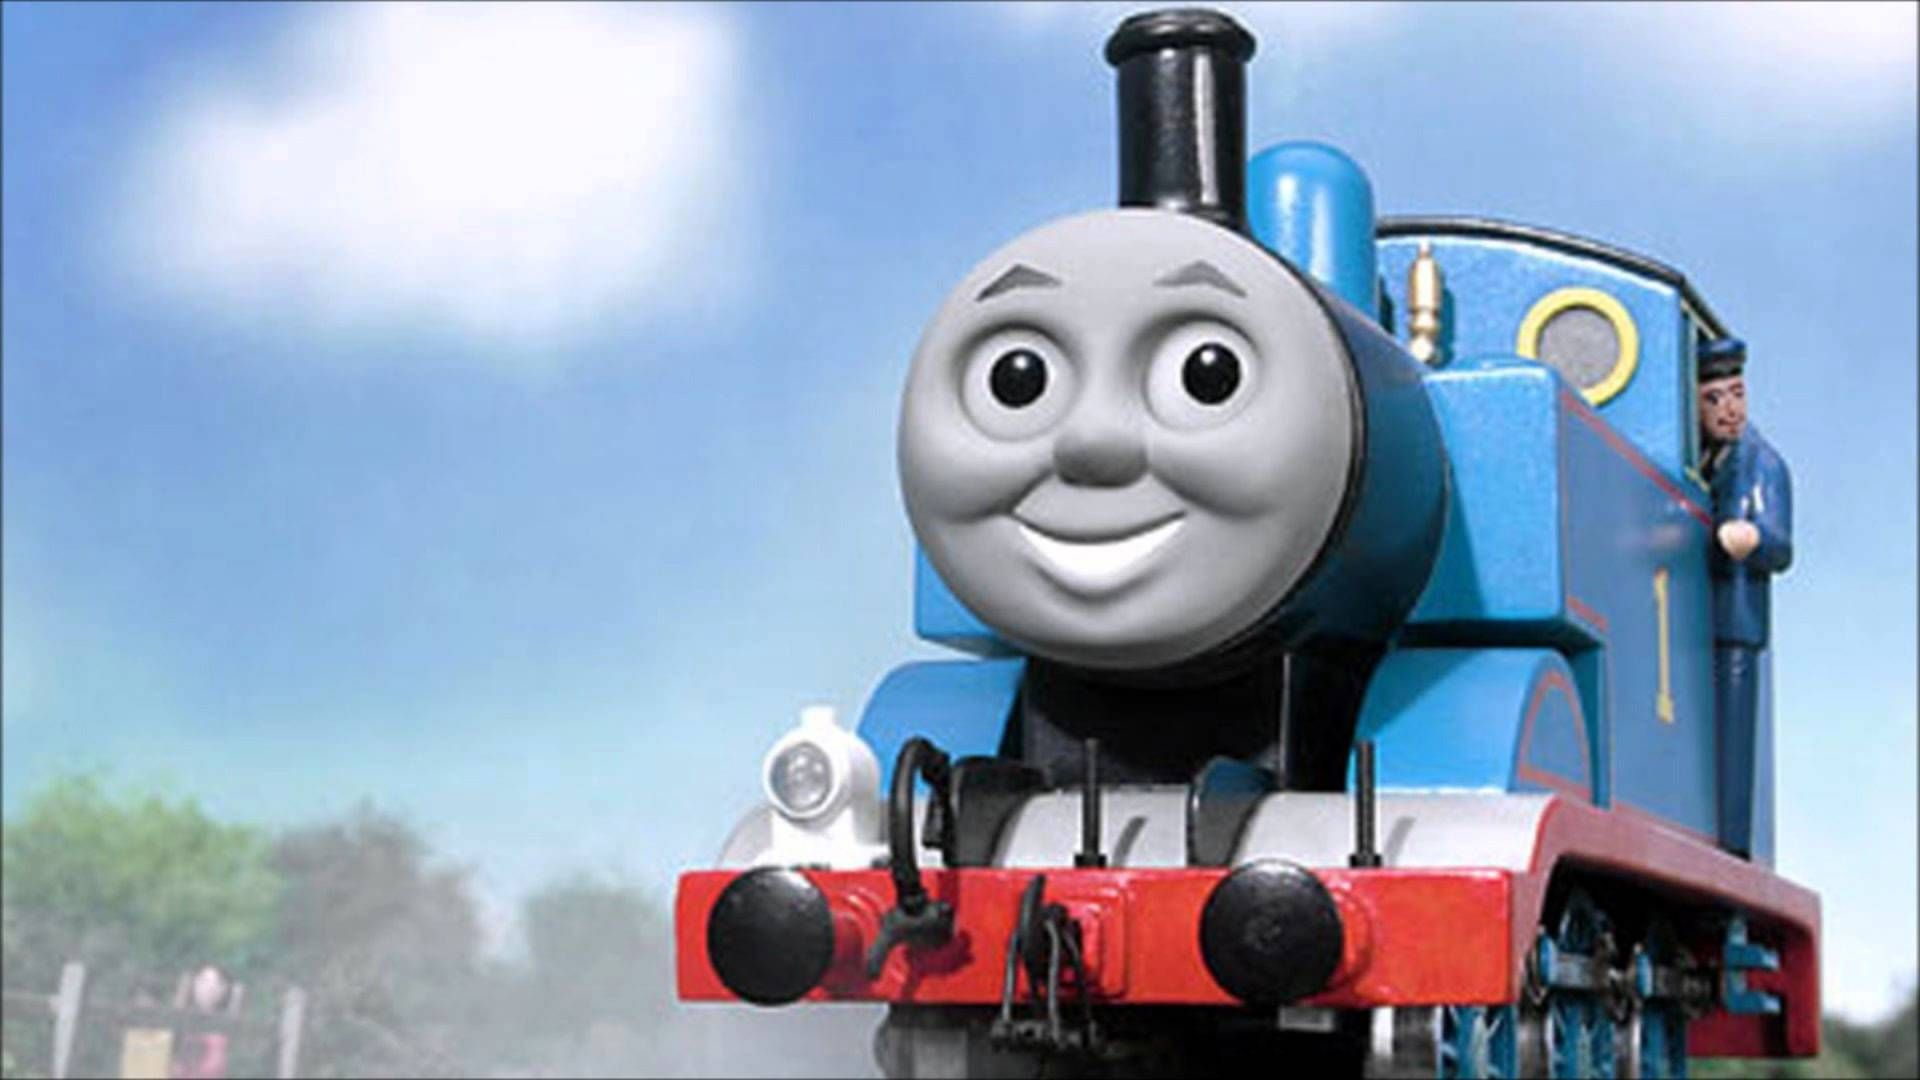 Thomas the Tank Engine wallpapers Crazy Frankenstein | HD Wallpapers ...